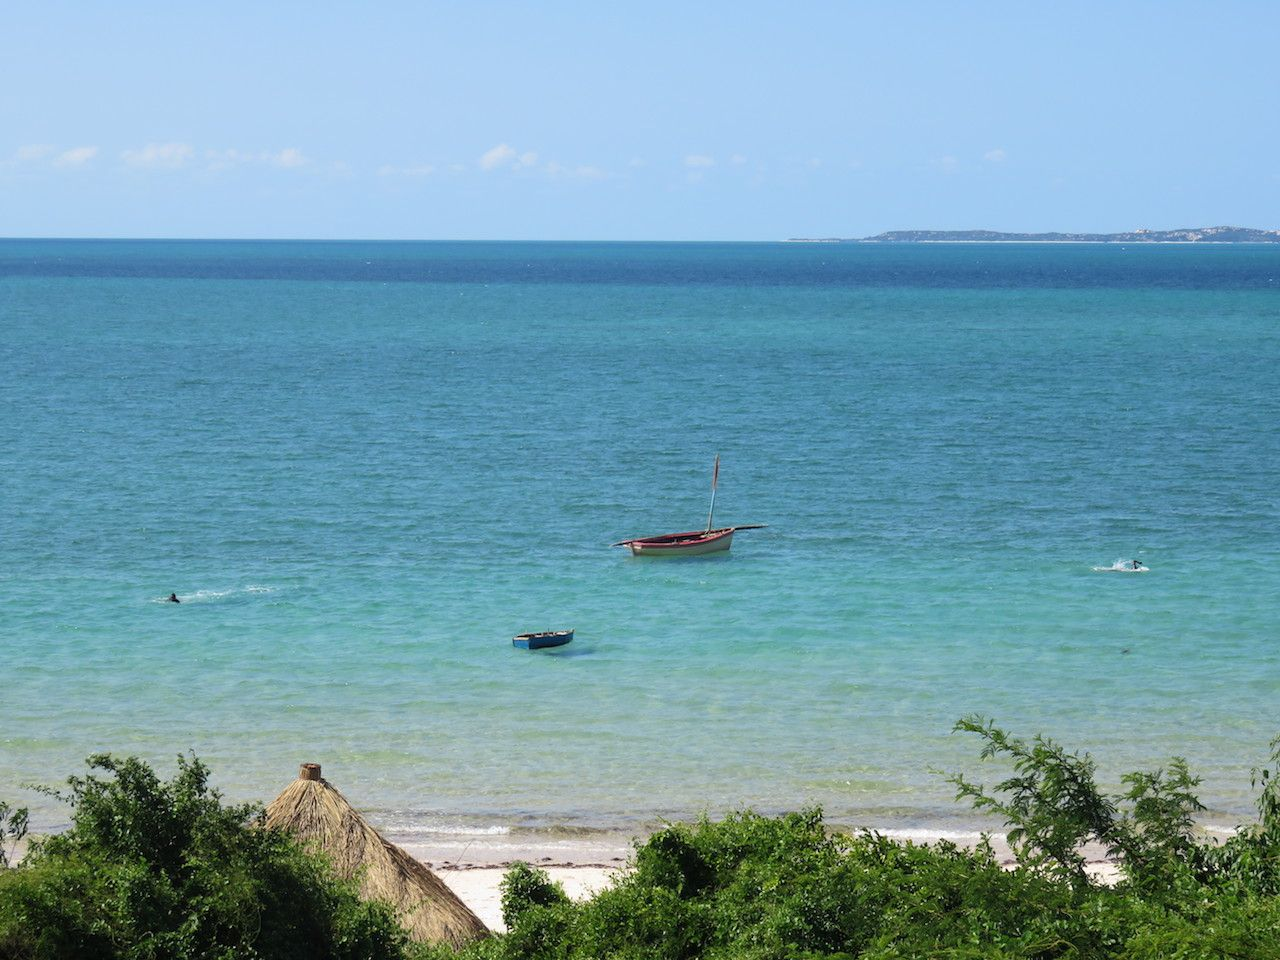 View of the beach and Indian Ocean in Vilanculos in Mozambique